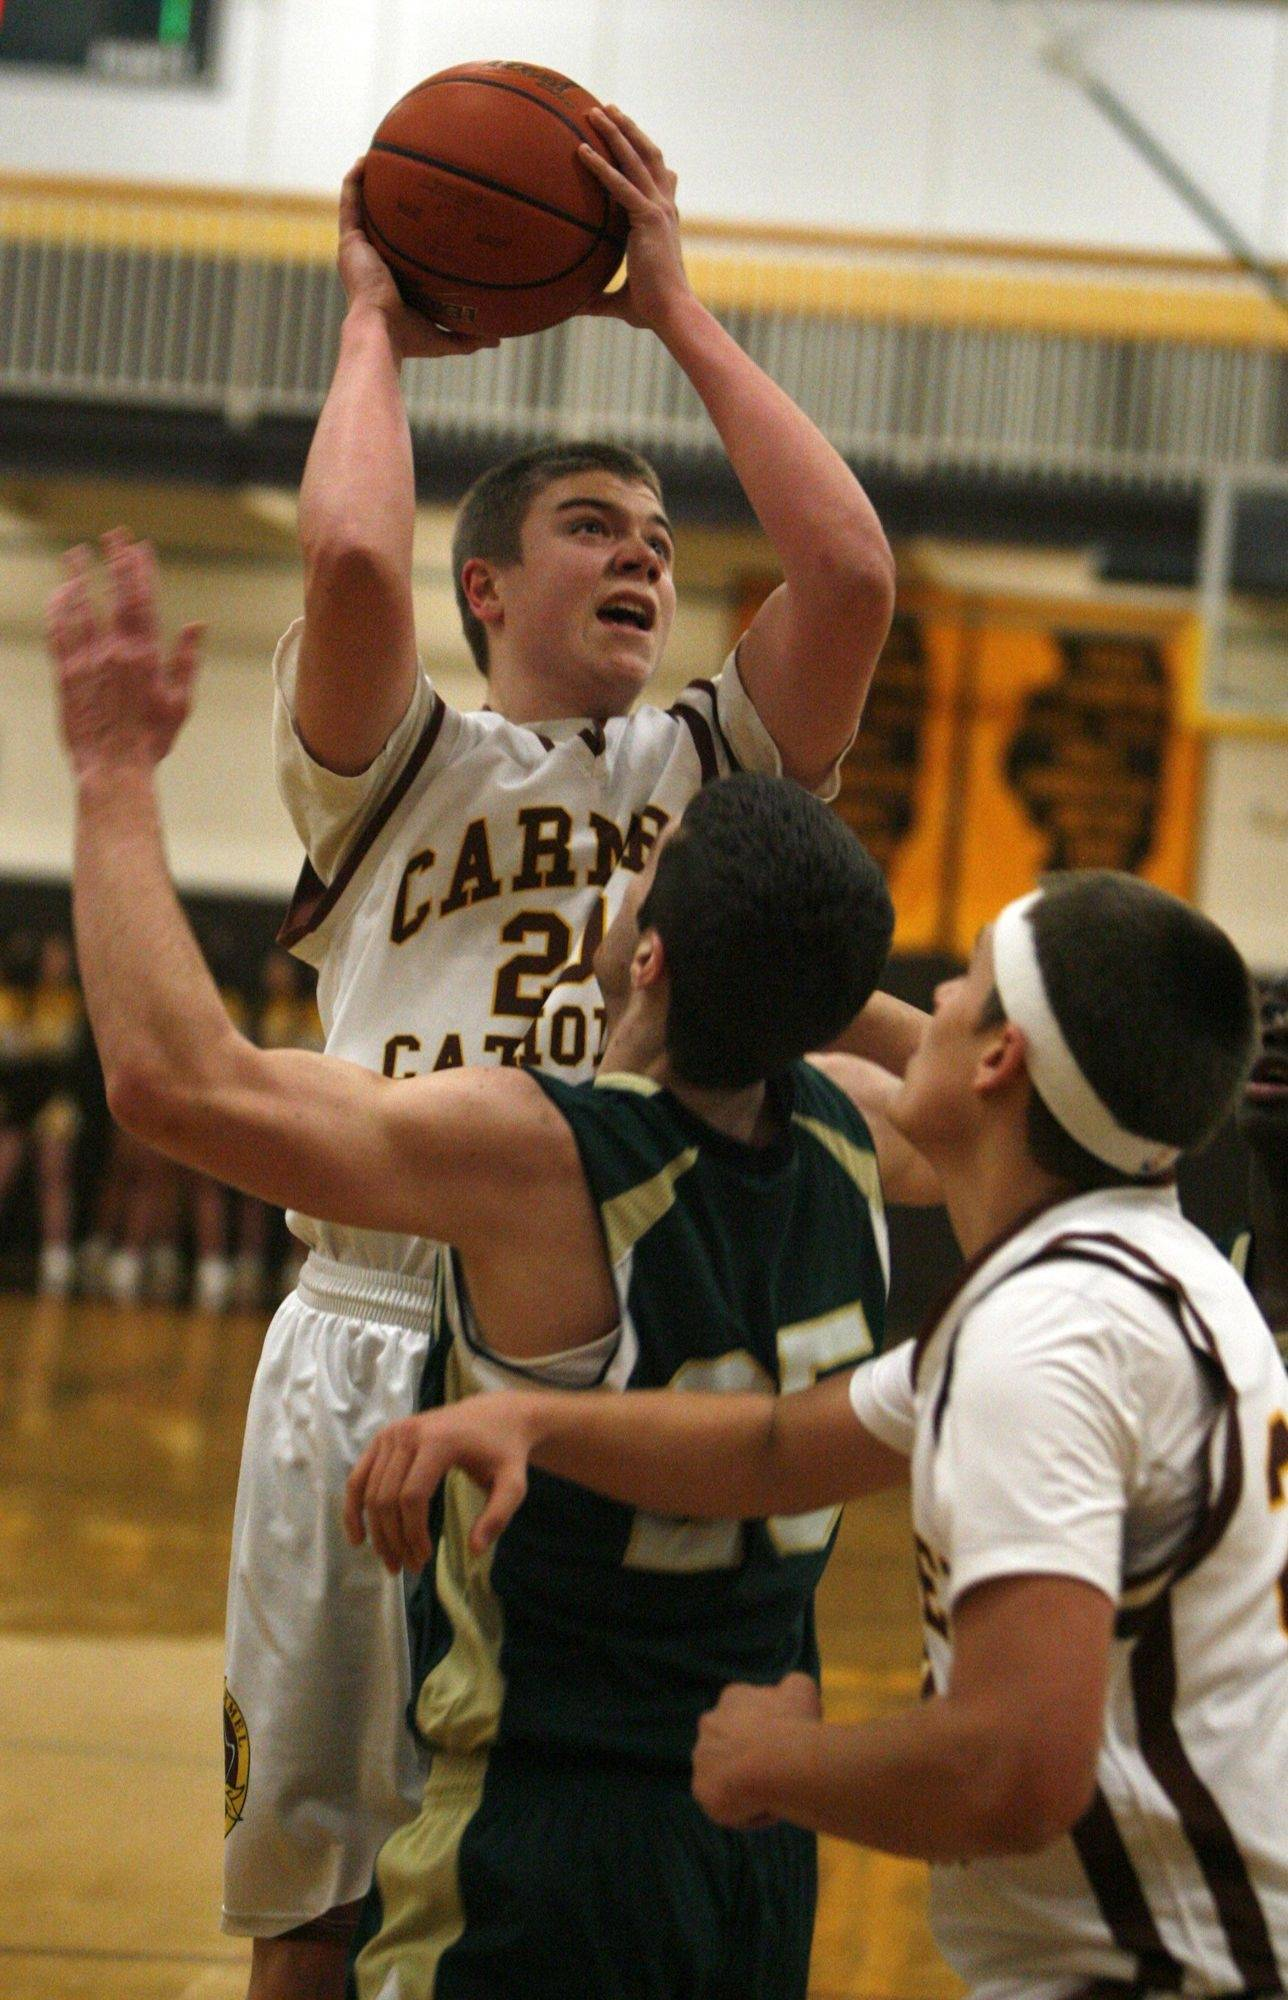 Carmel's Daniel Mooney puts up a shot Friday against St. Patrick. The host Corsairs lost 61-42 in East Suburban Catholic Conference action. See story on Page 6.